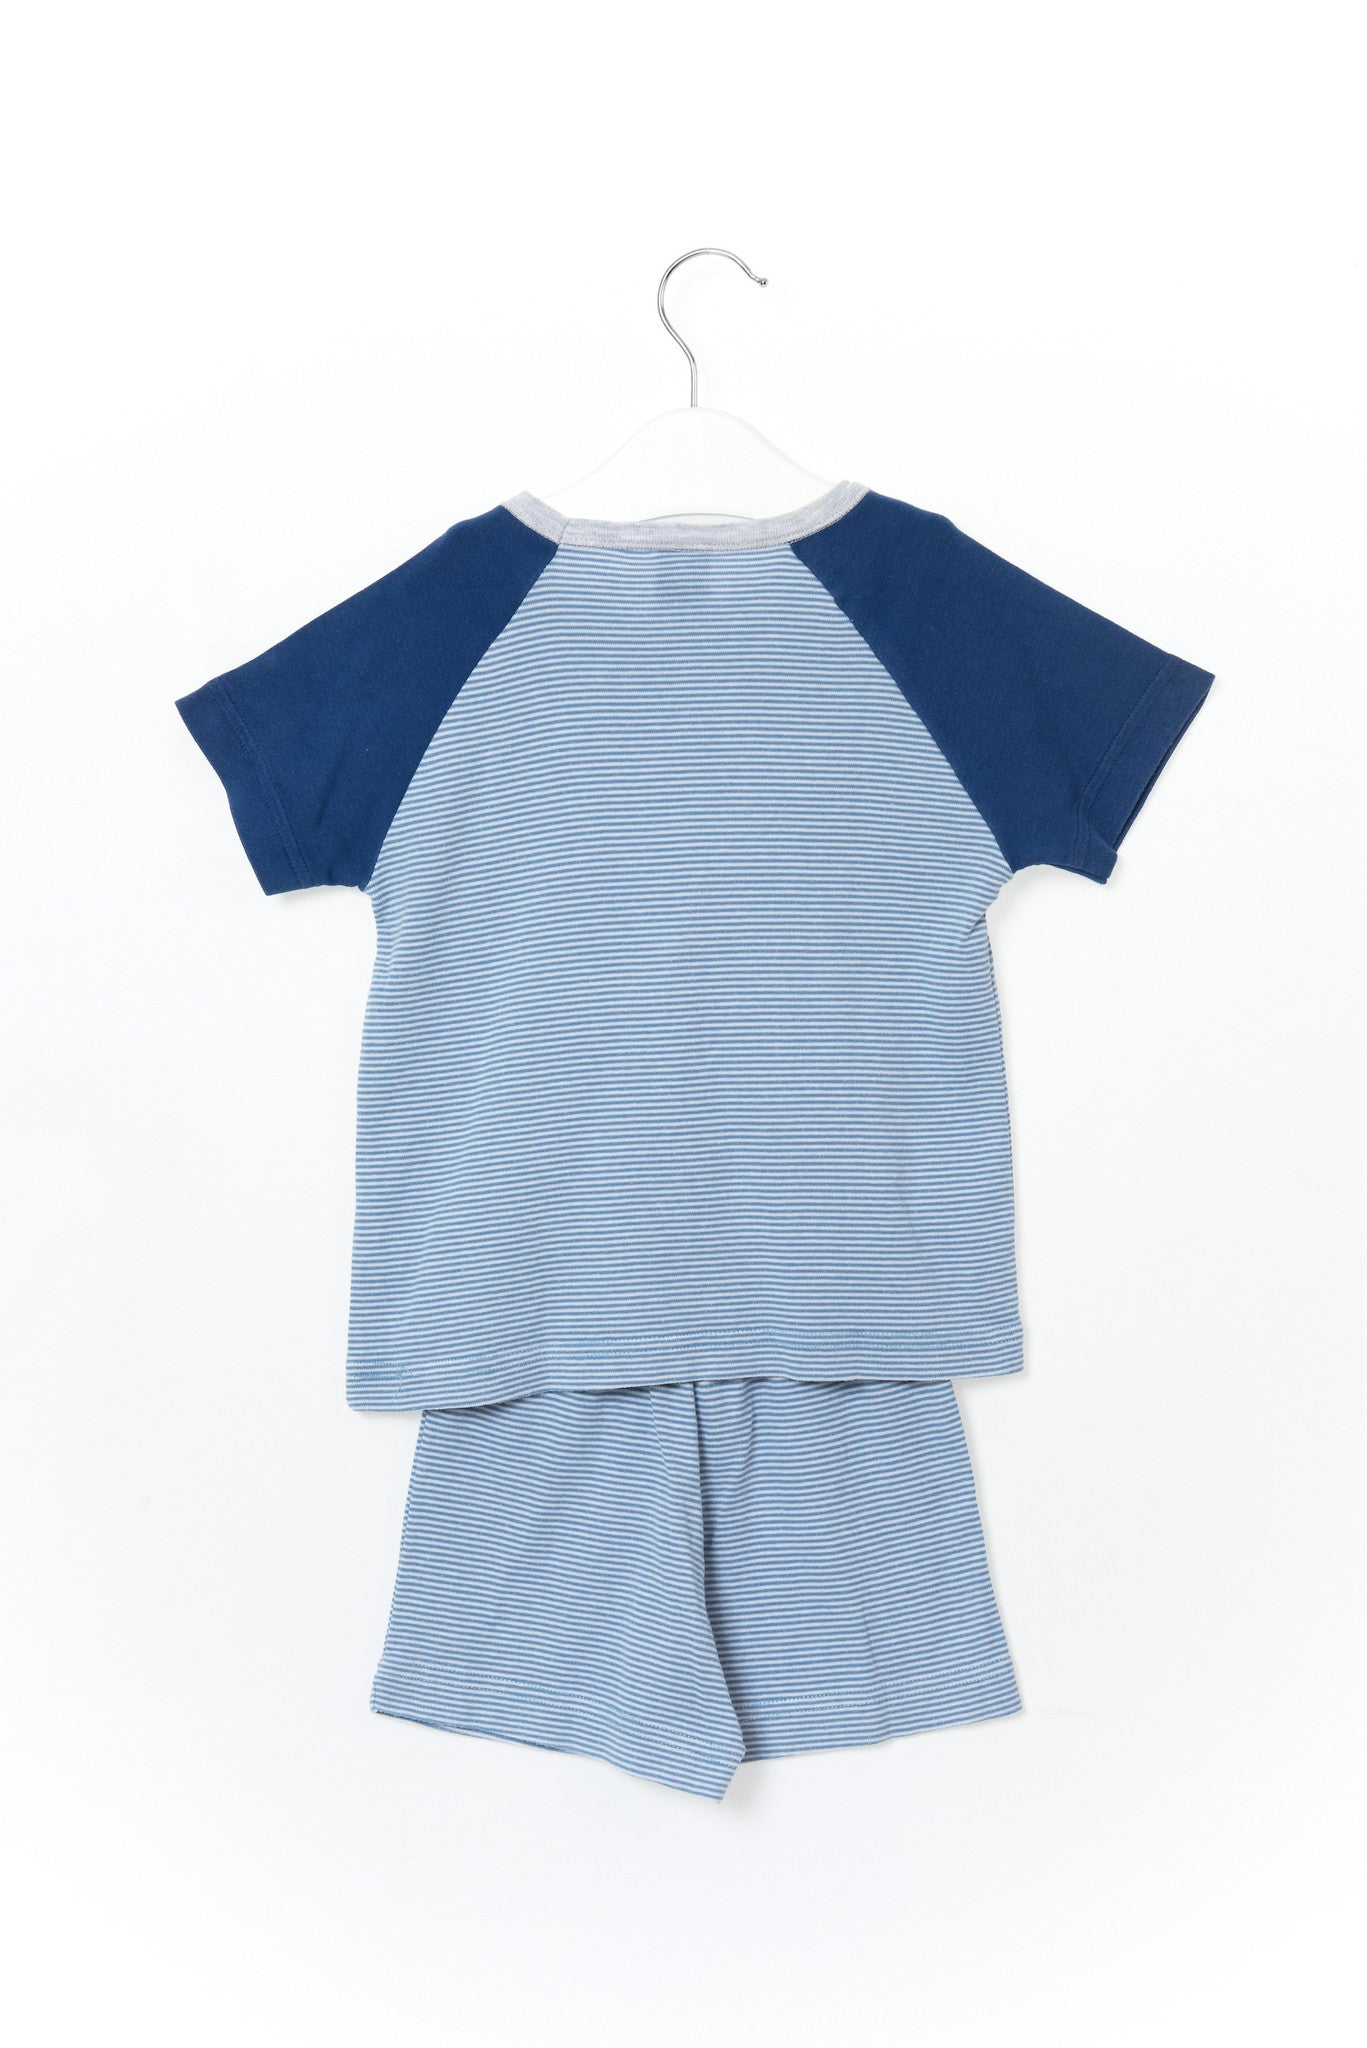 Set 3T, Petit Bateau at Retykle - Online Baby & Kids Clothing Up to 90% Off